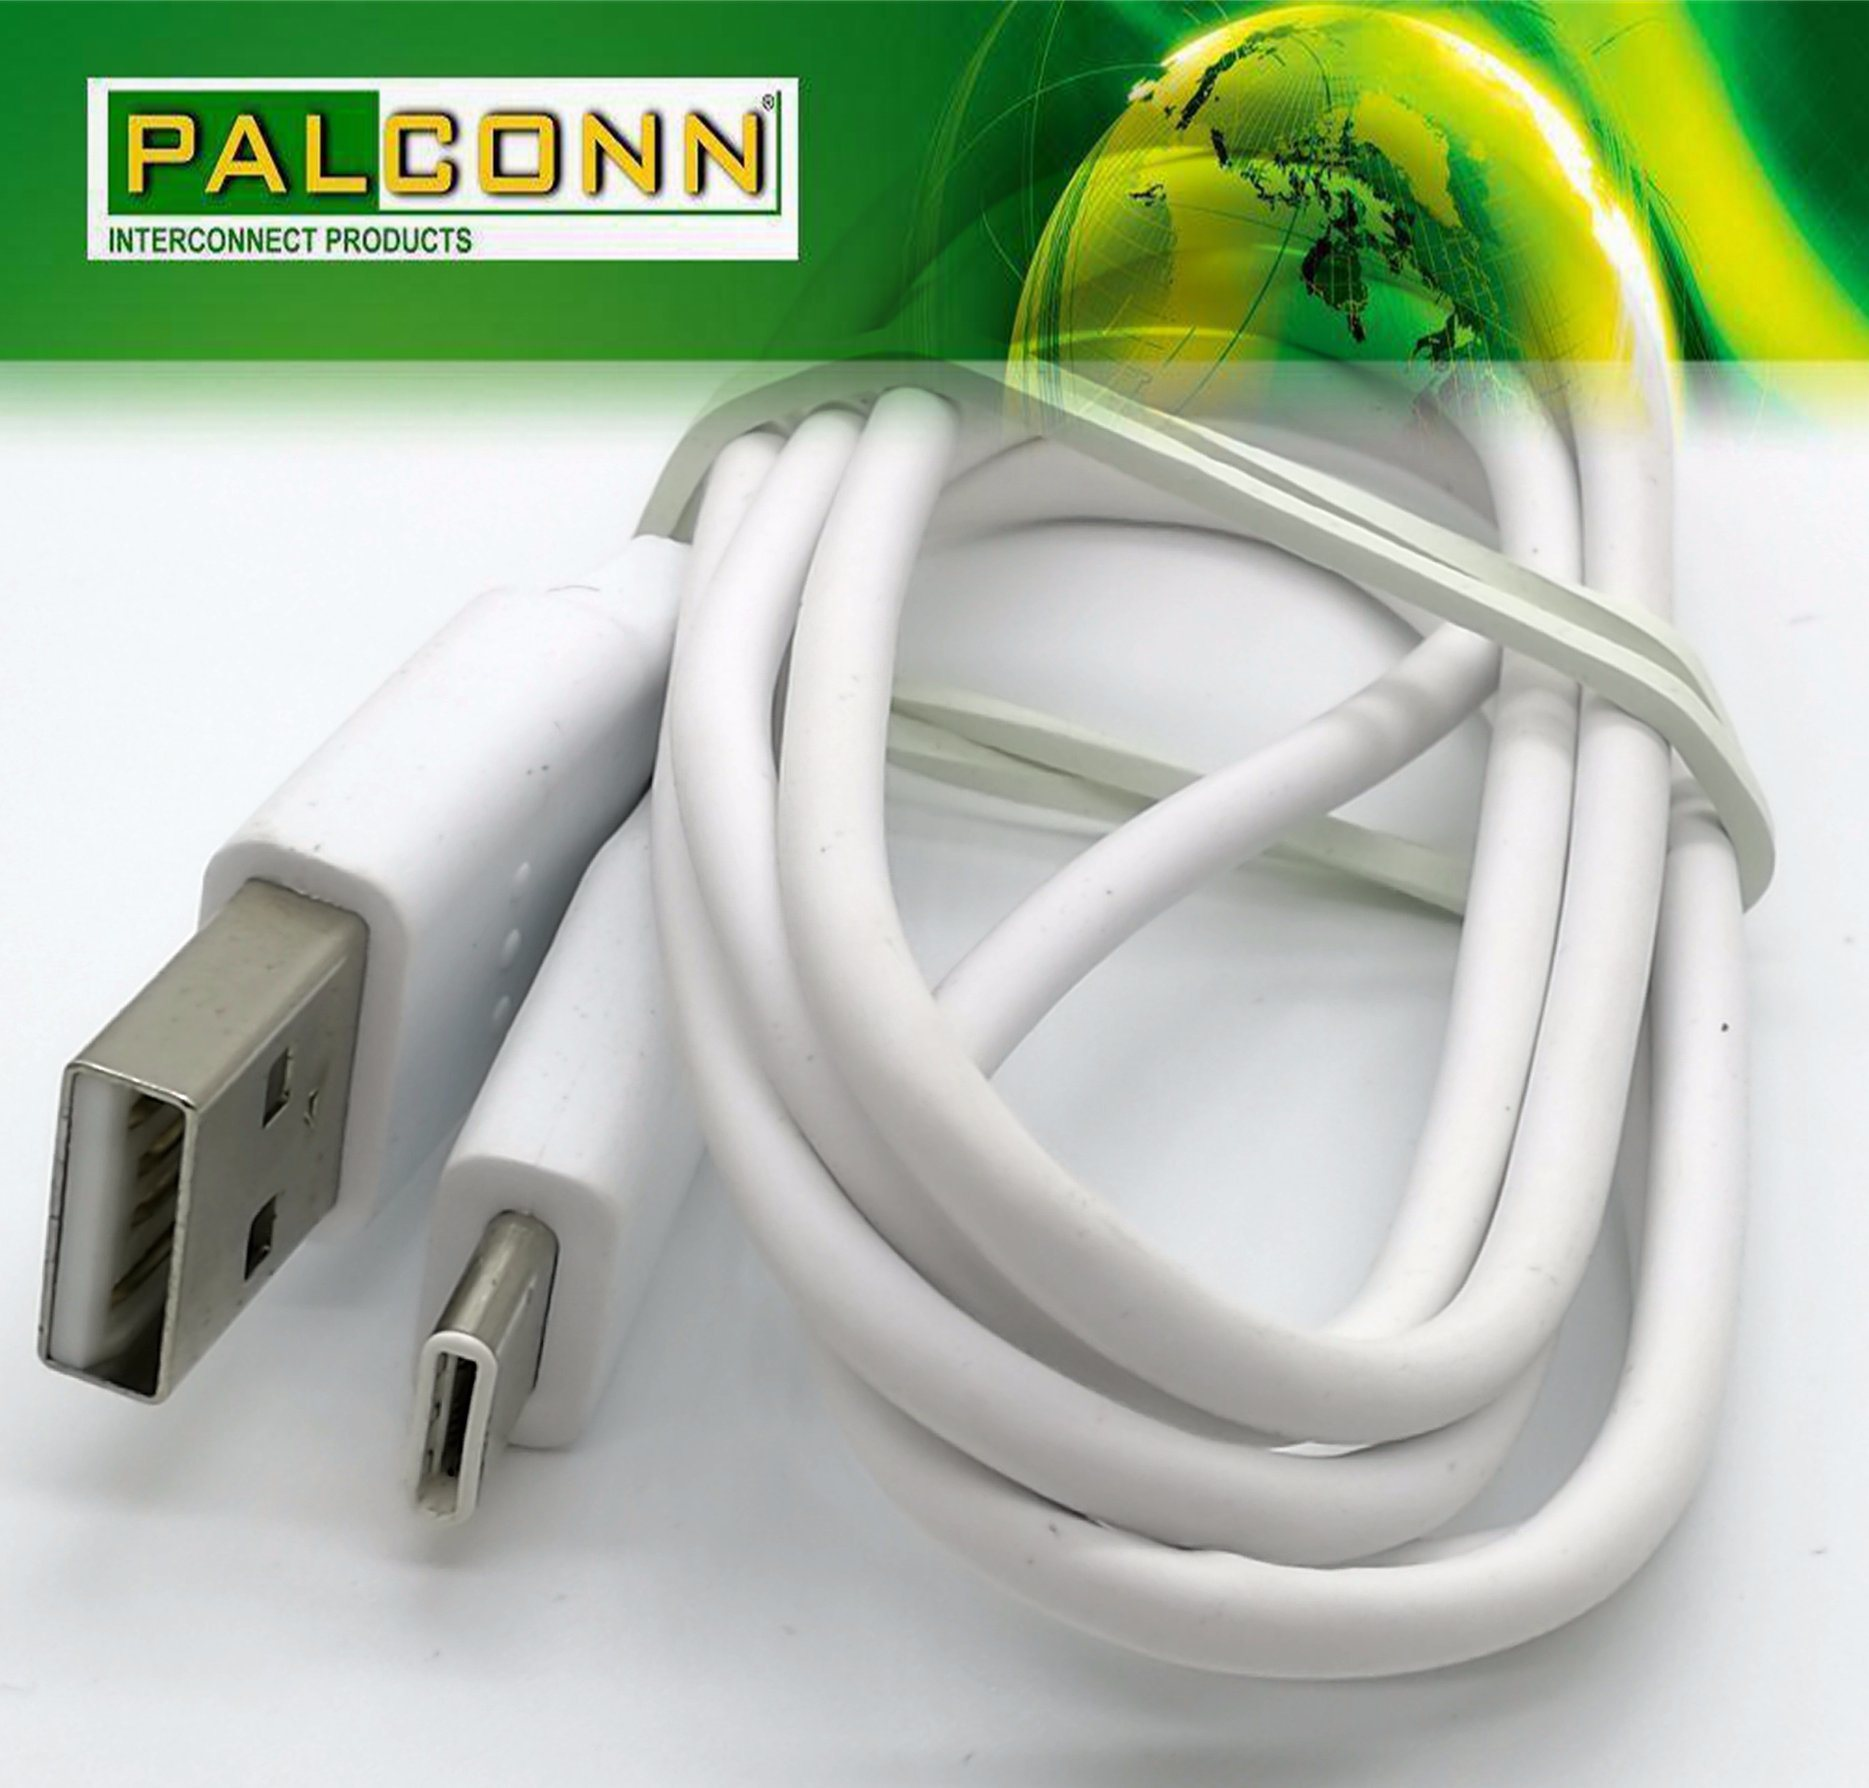 High Quality Data and Power Cable, Provide OEM/ODM Service